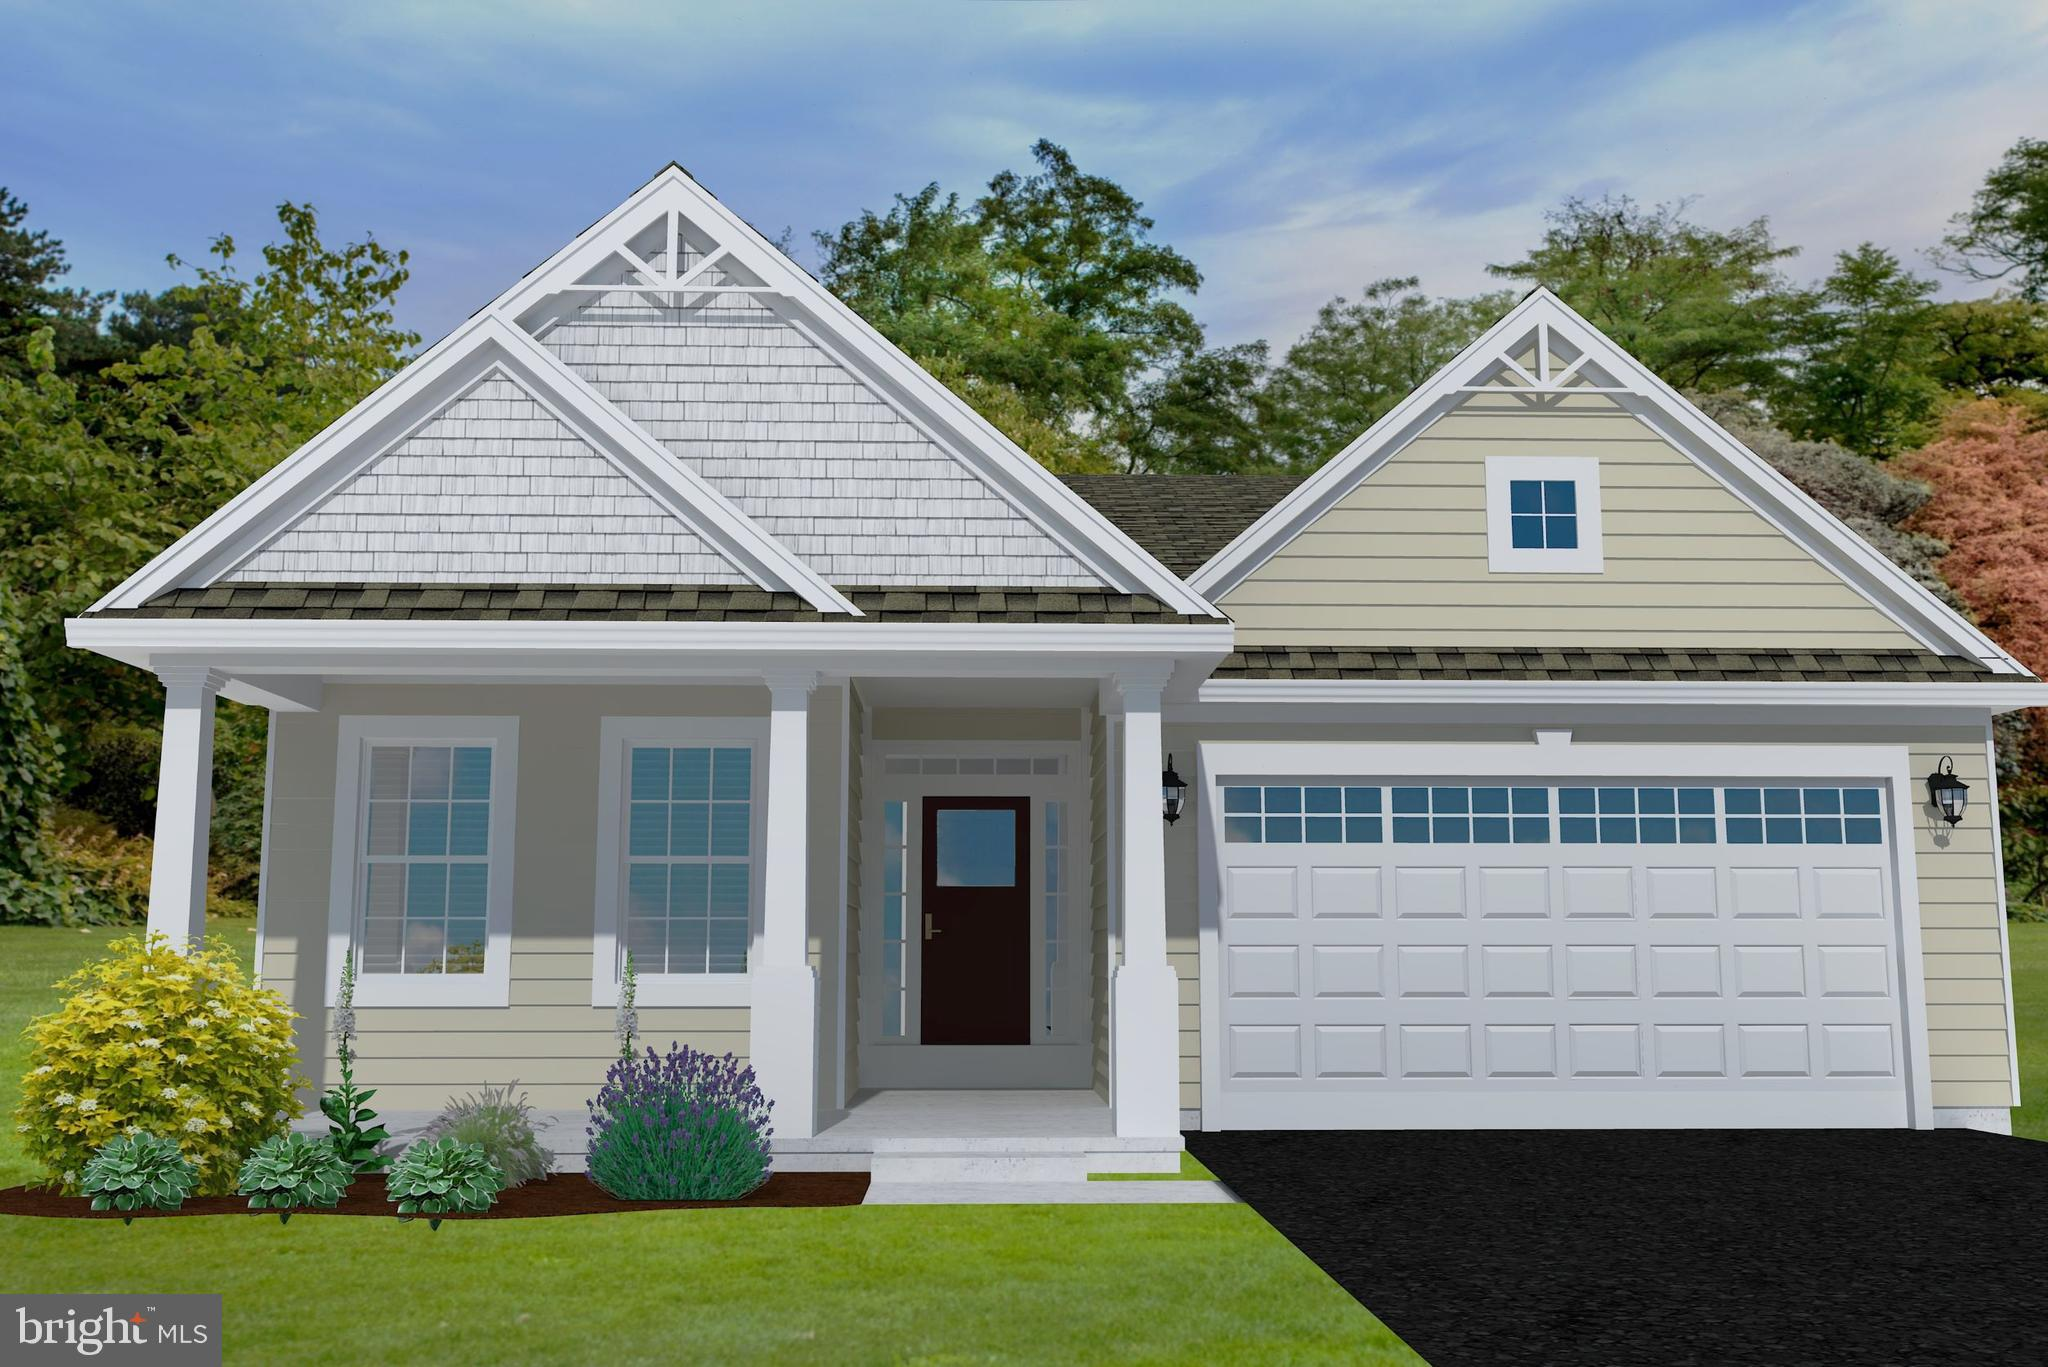 Visit our 55+ community at The Preserve at Robinson Farm. This Pembrooke II is being built just for you! The floor plan has style and simplicity all in one - 2 bedrooms, study, 2 full baths. Once you enter, you will be welcomed by a cozy foyer with luxury vinyl plank flooring. The open kitchen includes Bright White cabinets with crown molding, granite accented with stainless steel appliances, and a large island with a  built-in sink looking into your family room. The cafe area and a family room allows you space to entertain from the glow of the fireplace.  The large owners' bedroom with en-suite tiled bath and shower, and full-sized laundry round out this beautiful home. Let's not forget the full unfinished basement with rough in plumbing to add a full bathroom in the future. This home offers all the space you need with lawn service included! Clubhouse included! This home is under construction, photos may be of a similar or decorated model home.